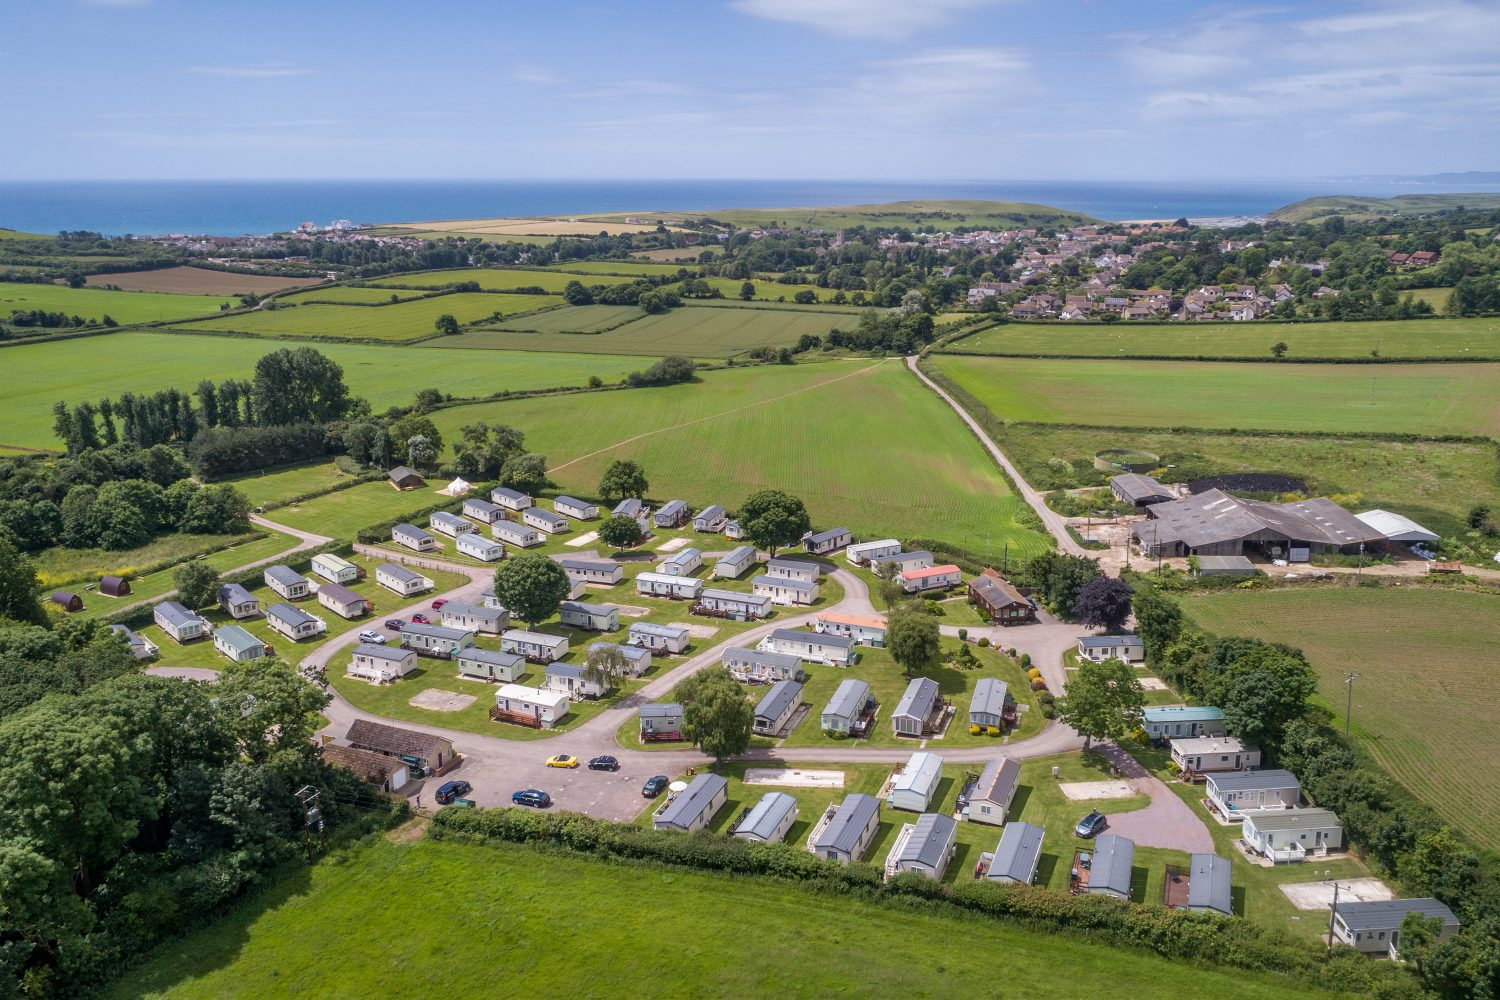 Aerial view of Graston Copse. Holiday Homes for Sale in Dorset